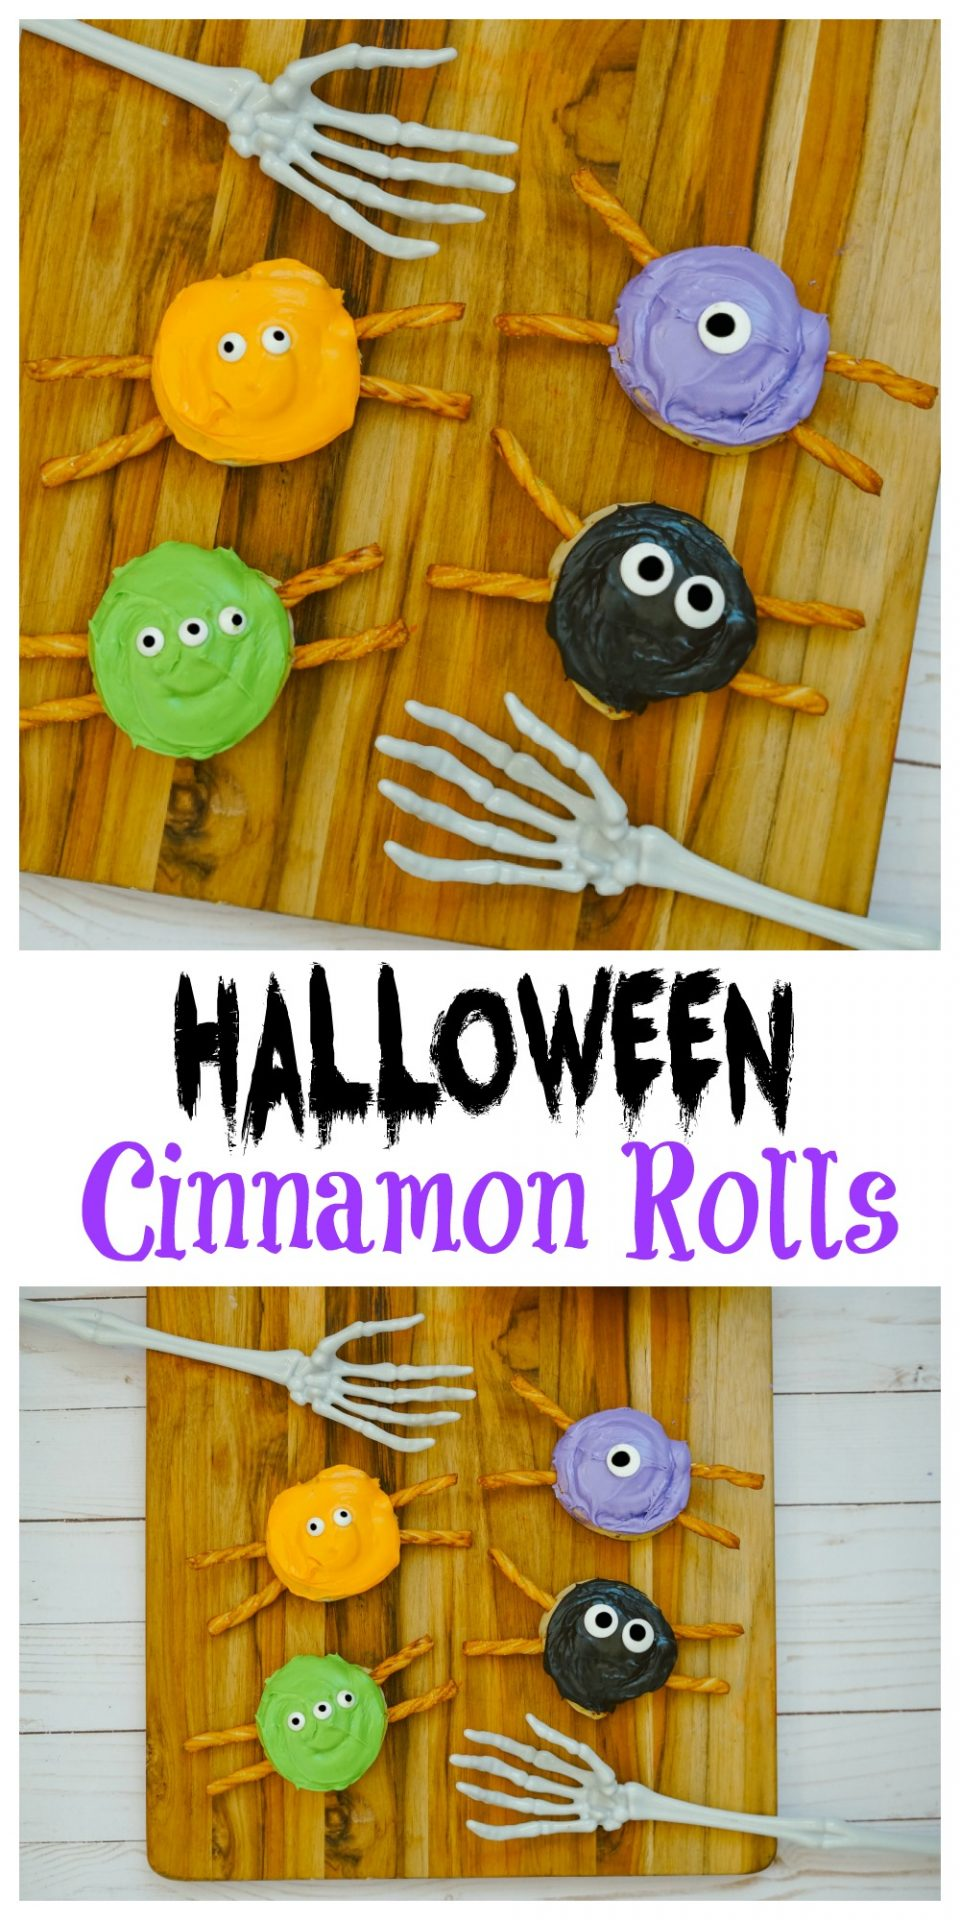 These Halloween Cinnamon Rolls are an easy & fun Halloween Snack! This recipe is so easy to make and your family will love this Halloween themed dessert.